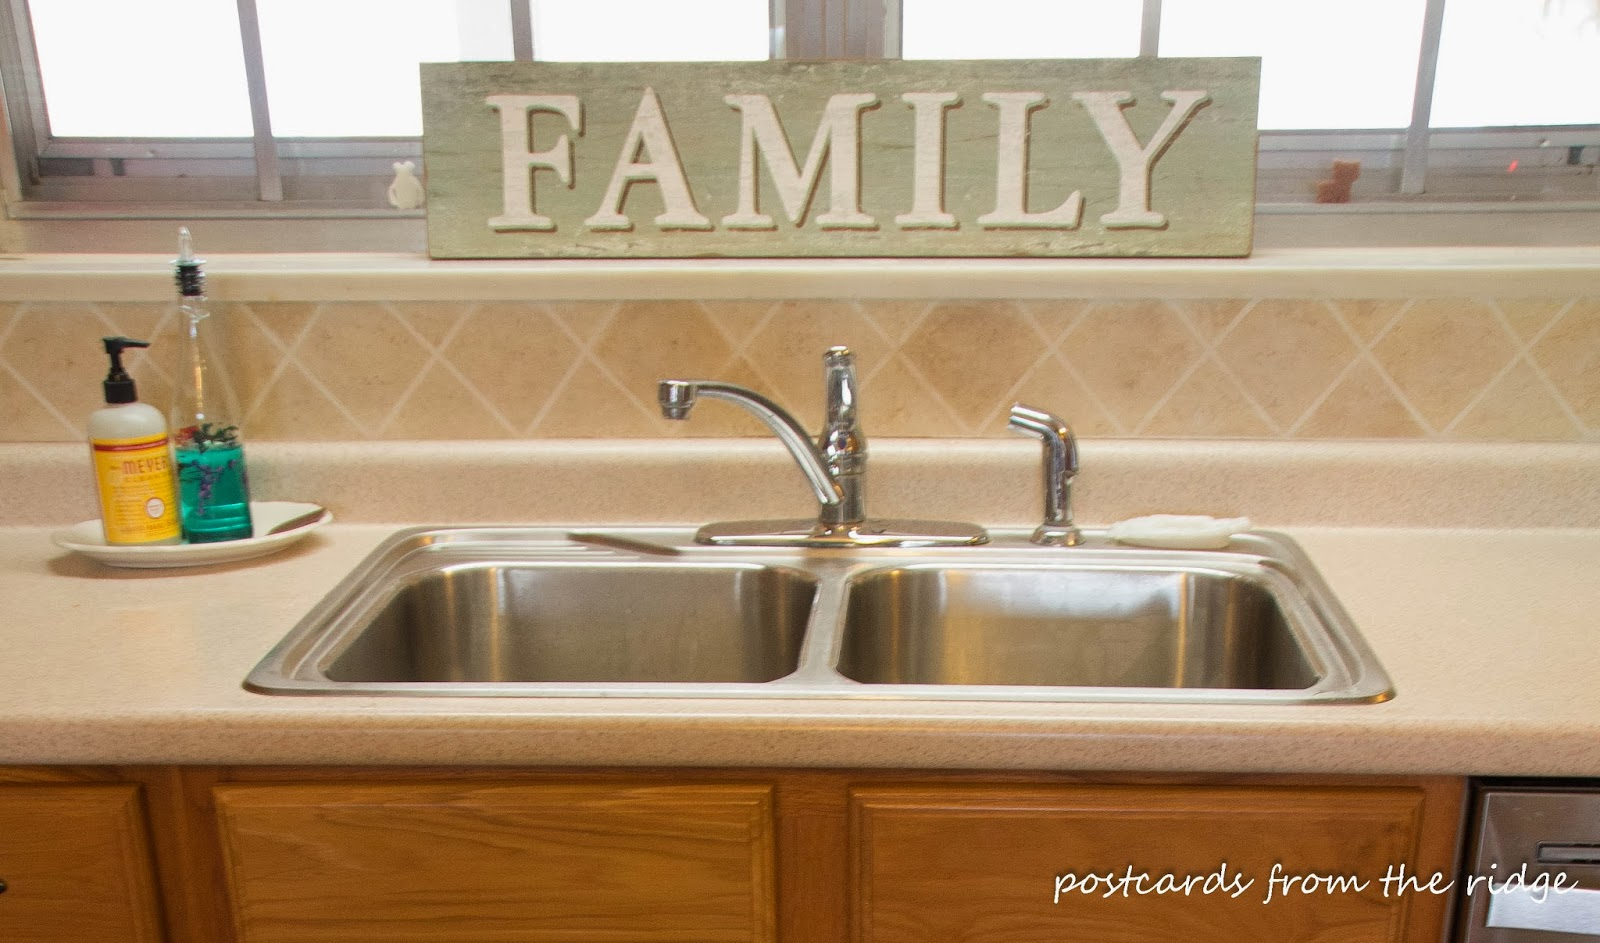 Thanks To National Builder Supply And Moen, We Were Able To Upgrade To A  Gorgeous New Faucet That Was Exactly What We Had Been Wanting.